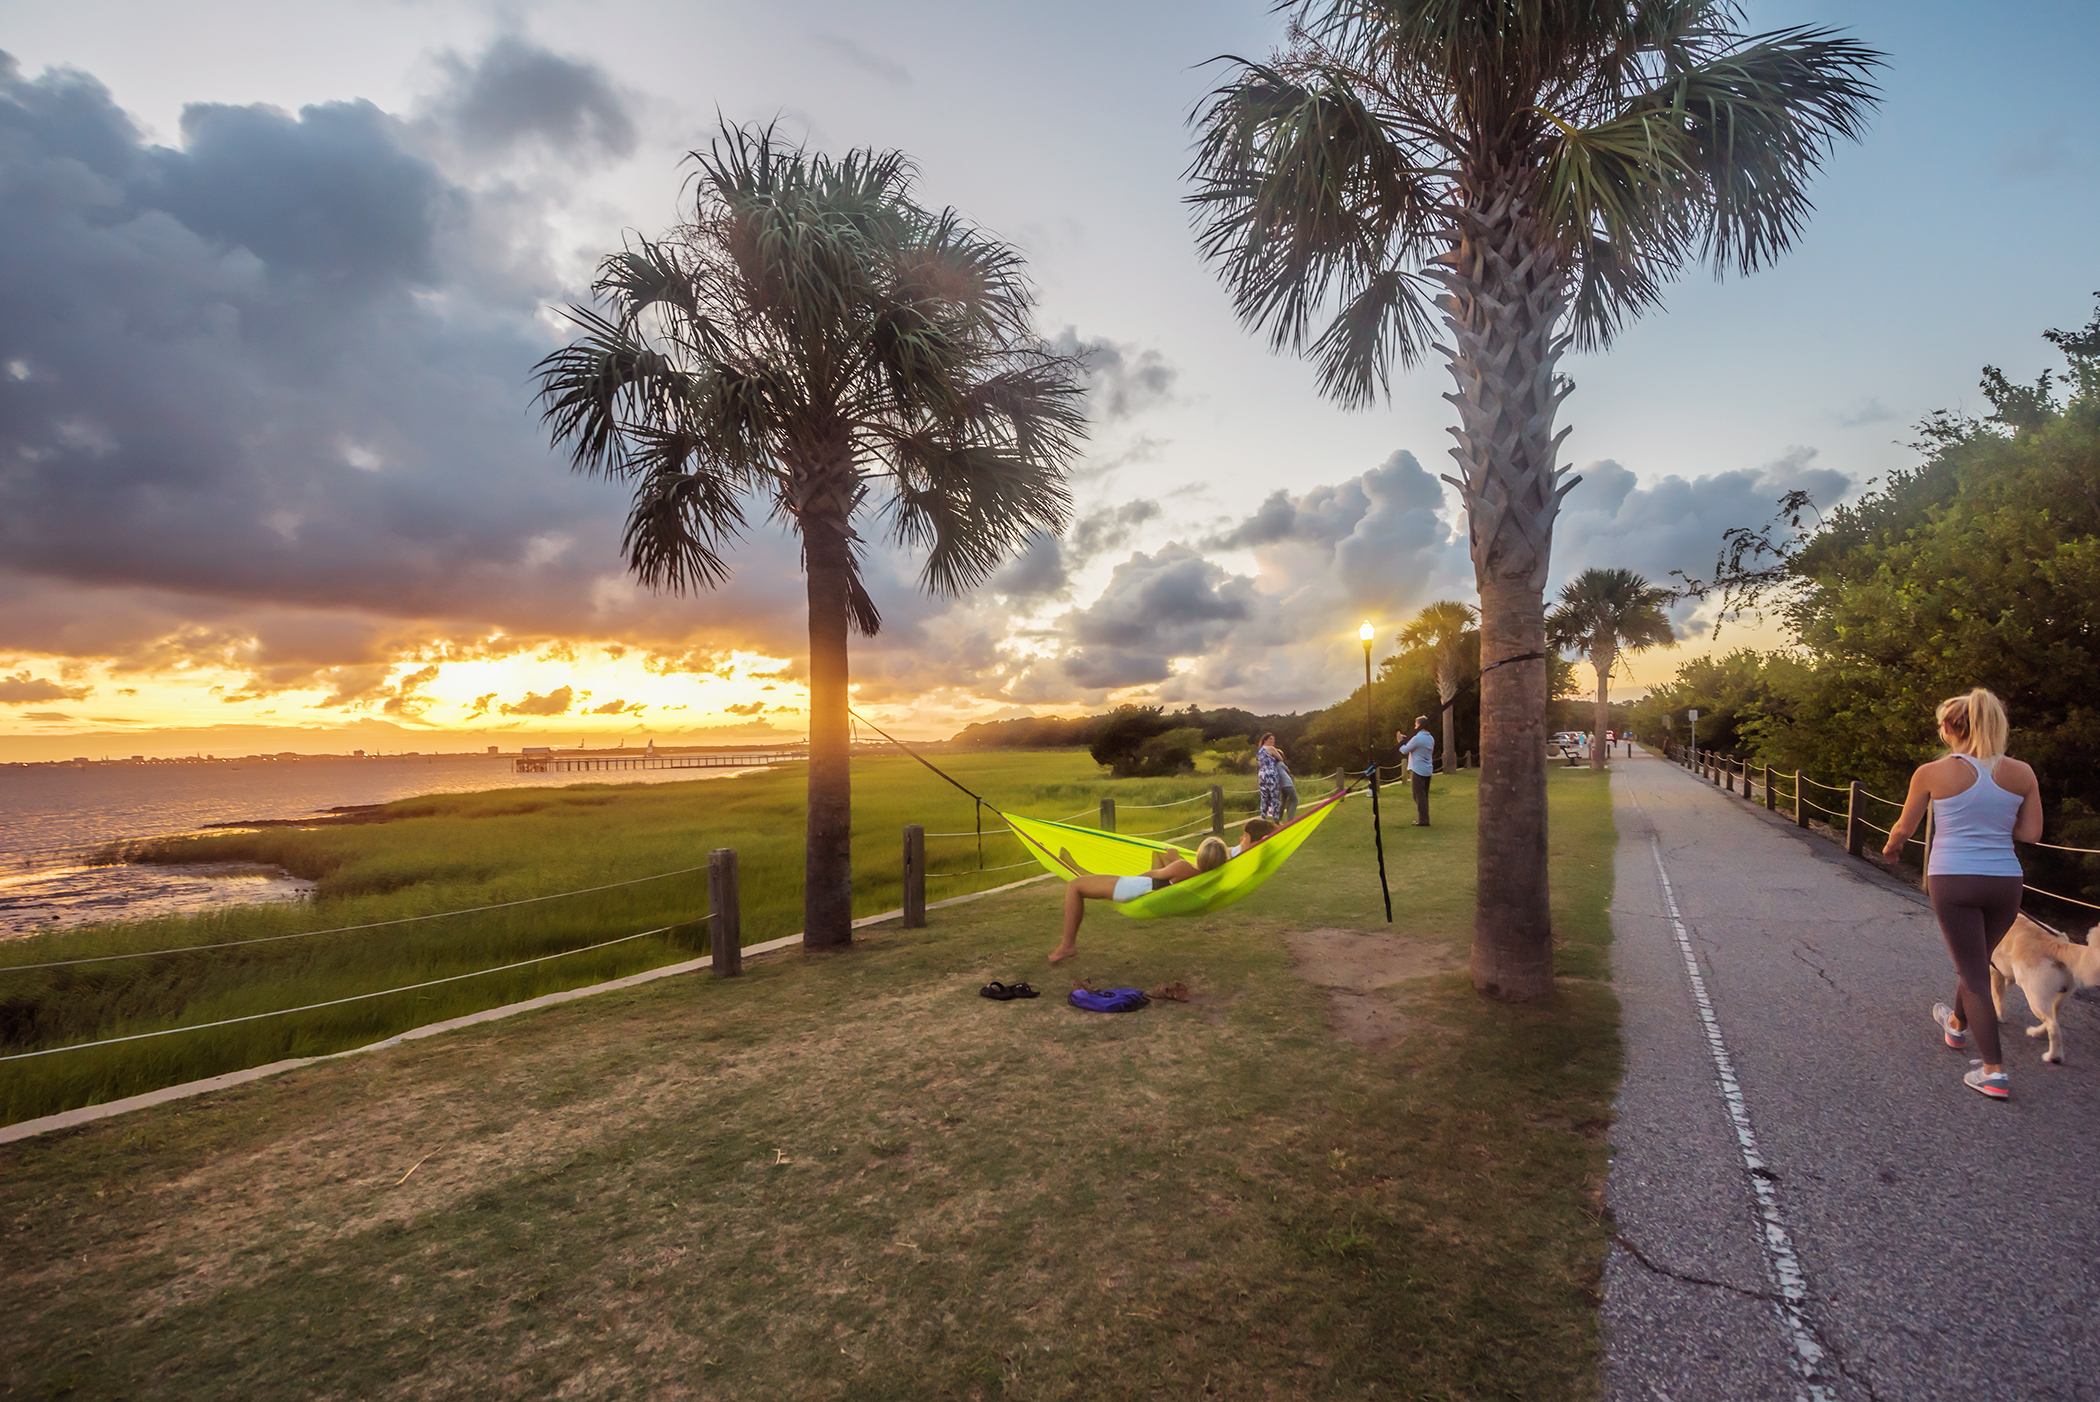 Charleston, South Carolina. One of the prettiest cities in the country, Charleston is kissed on all sides by water, from the Cooper and Ashley rivers to the harbor leading to the Atlantic.